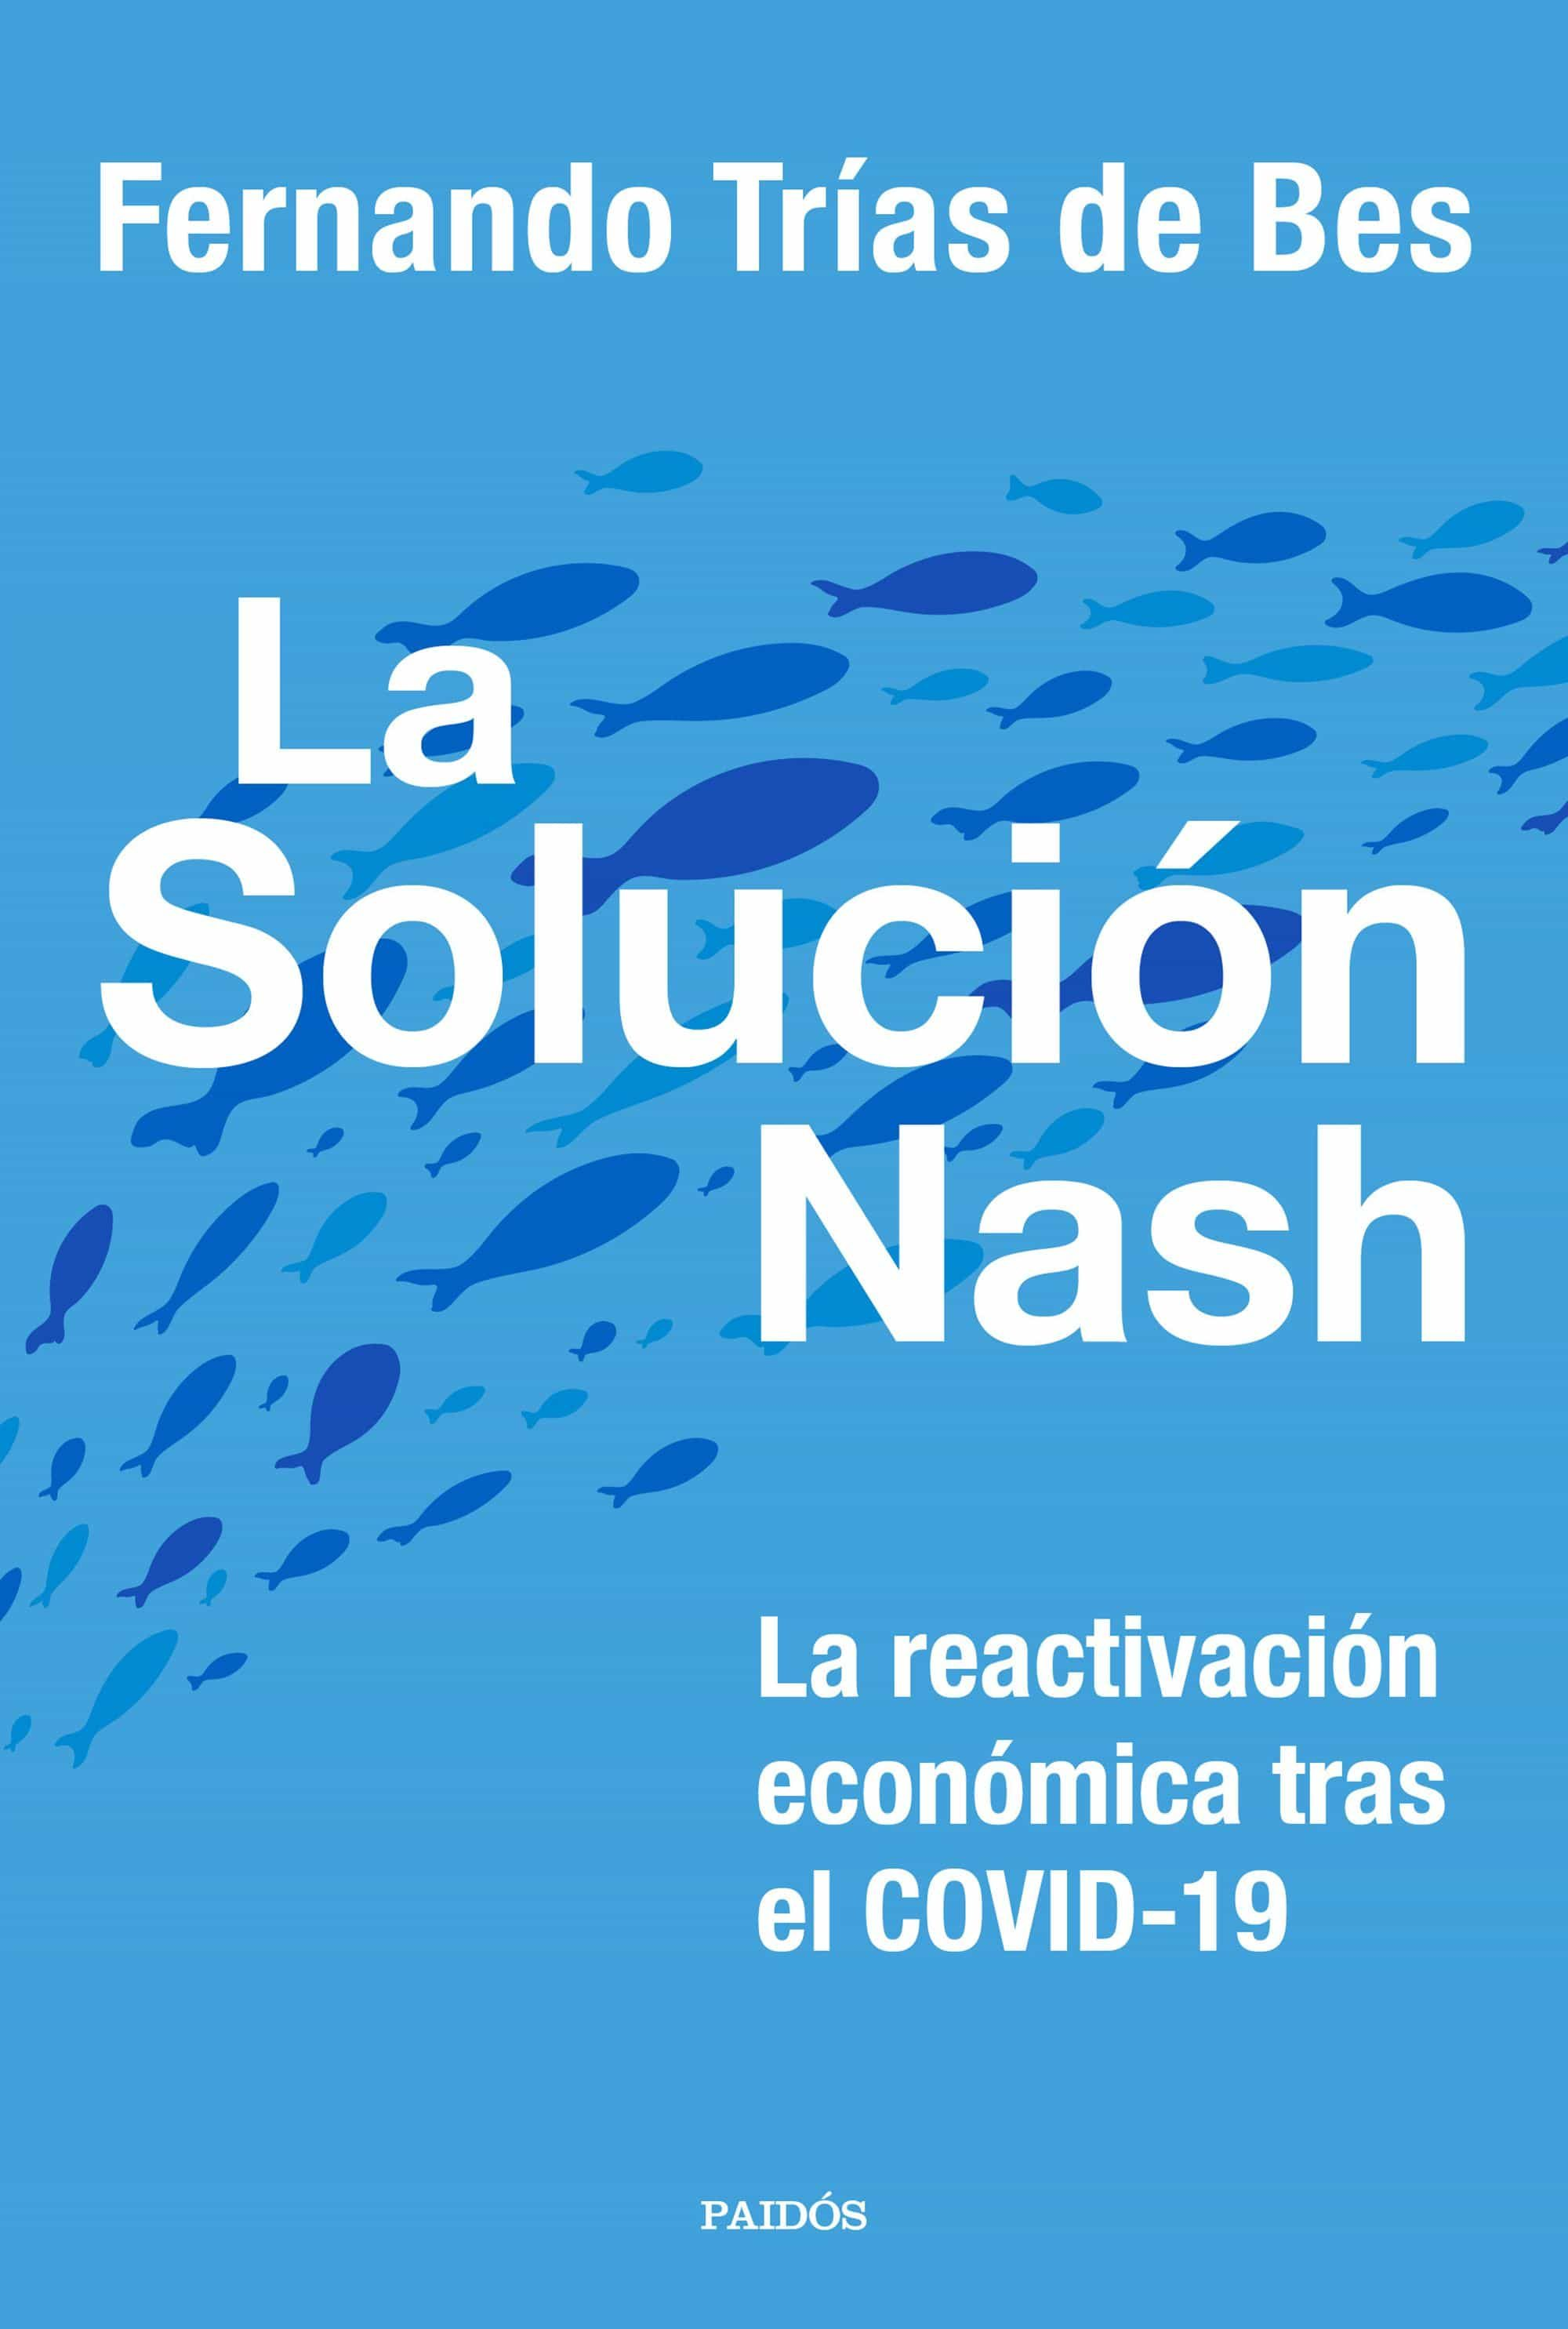 THE NASH SOLUTION: THE ECONOMIC REACTIVATION POST COVID-19.